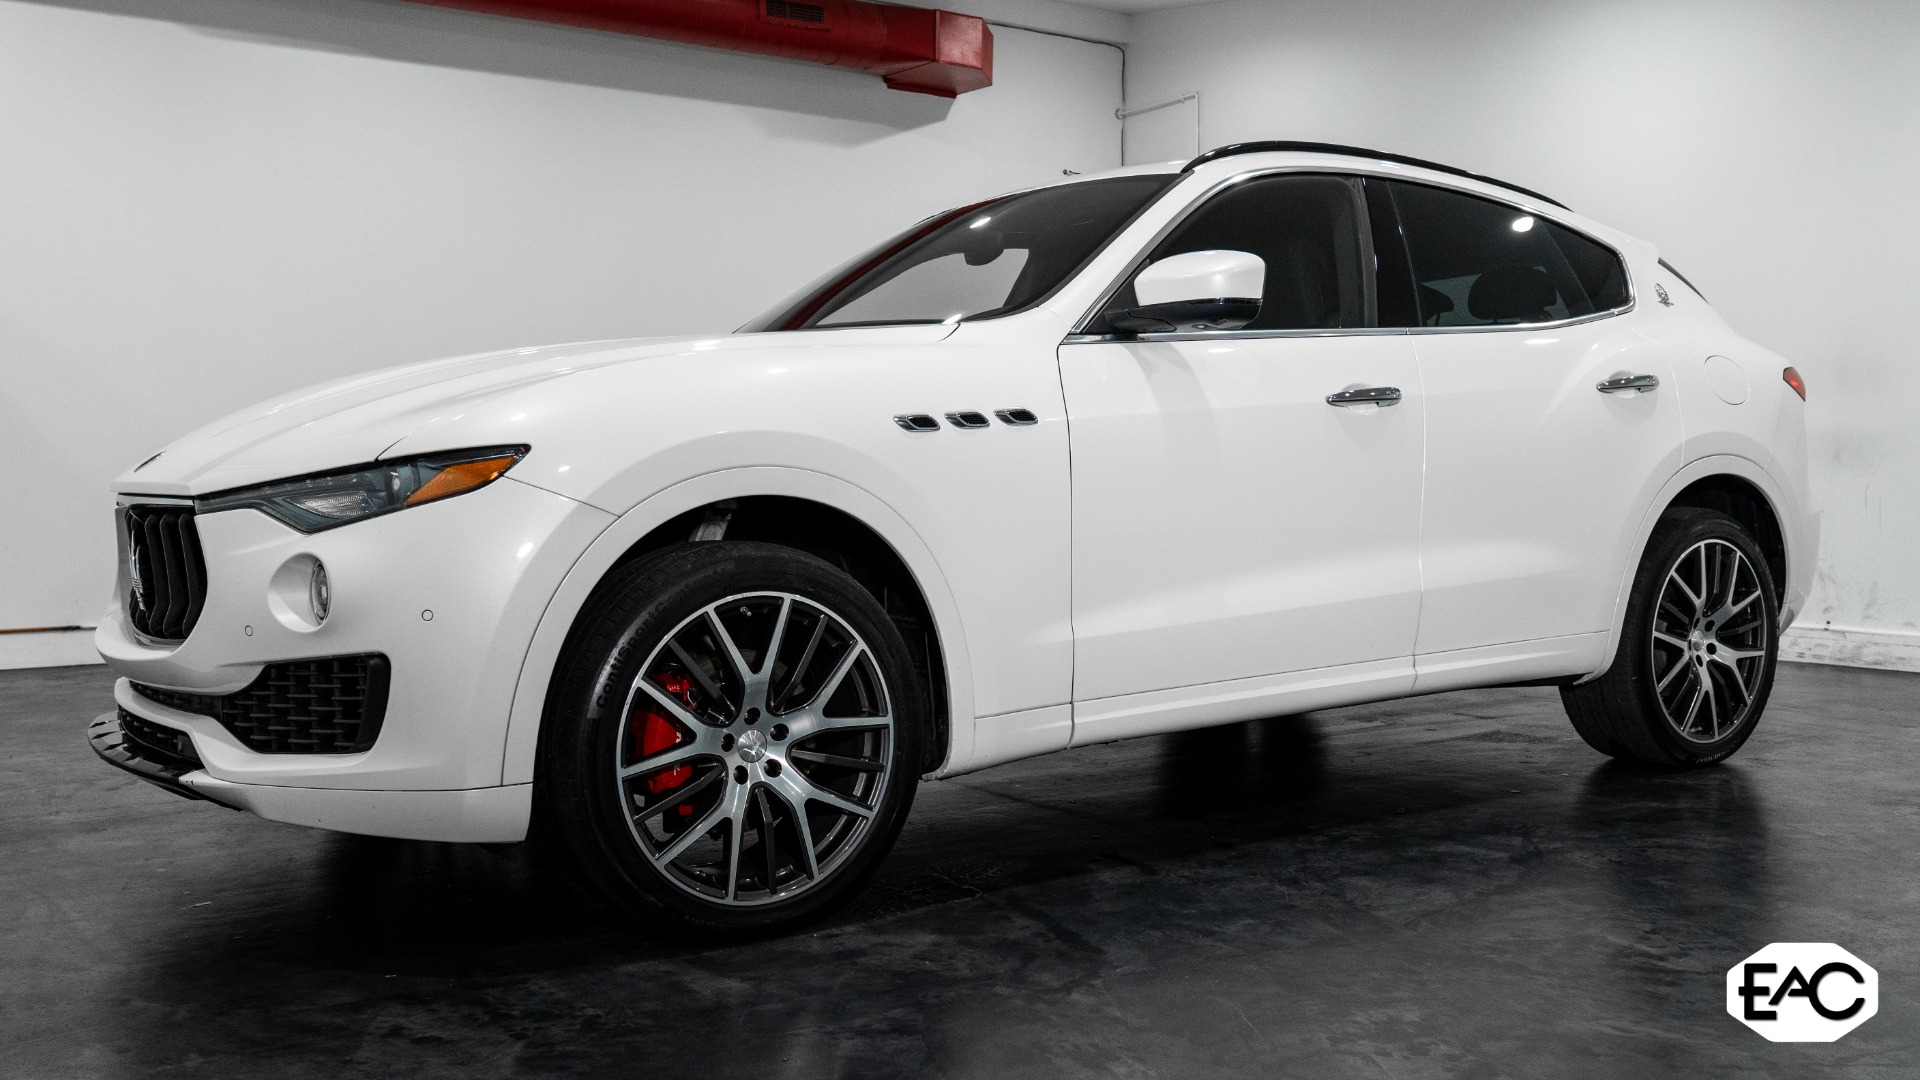 Used 2017 Maserati Levante AWD for sale Sold at Empire Auto Collection in Warren MI 48091 1